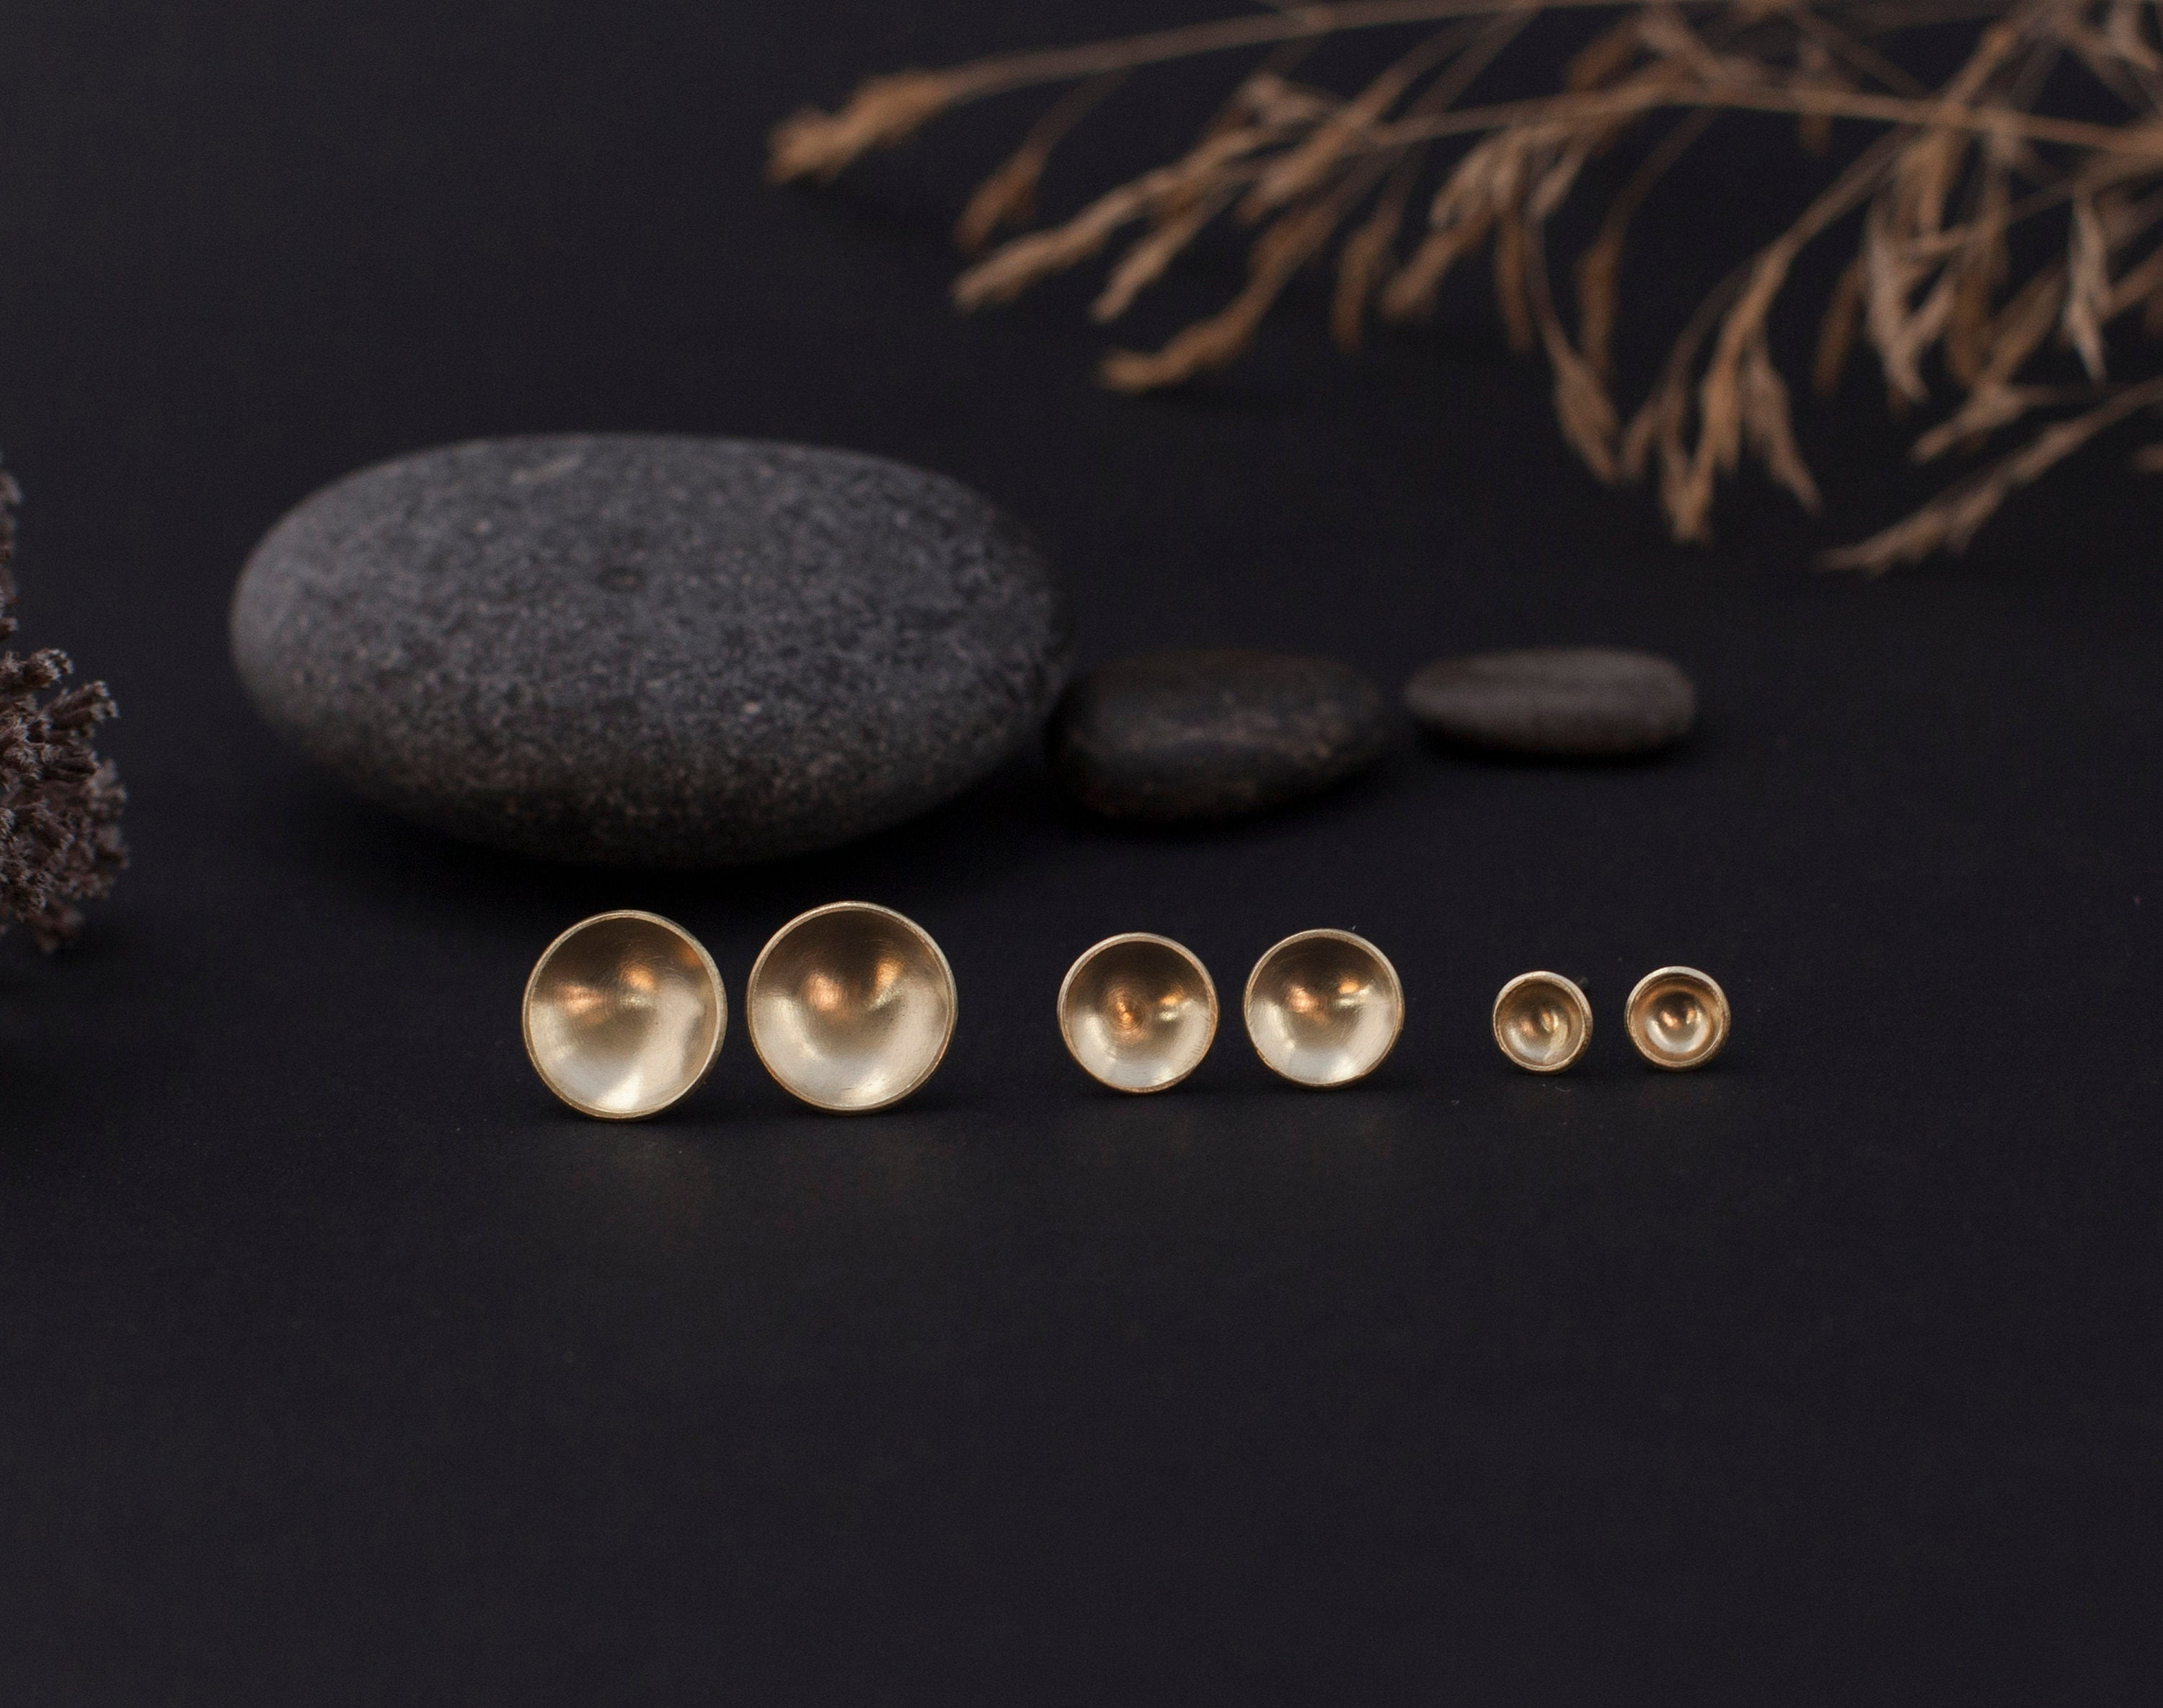 Medium brass bowl earrings with silver ear posts - 9mm ø (made to order)